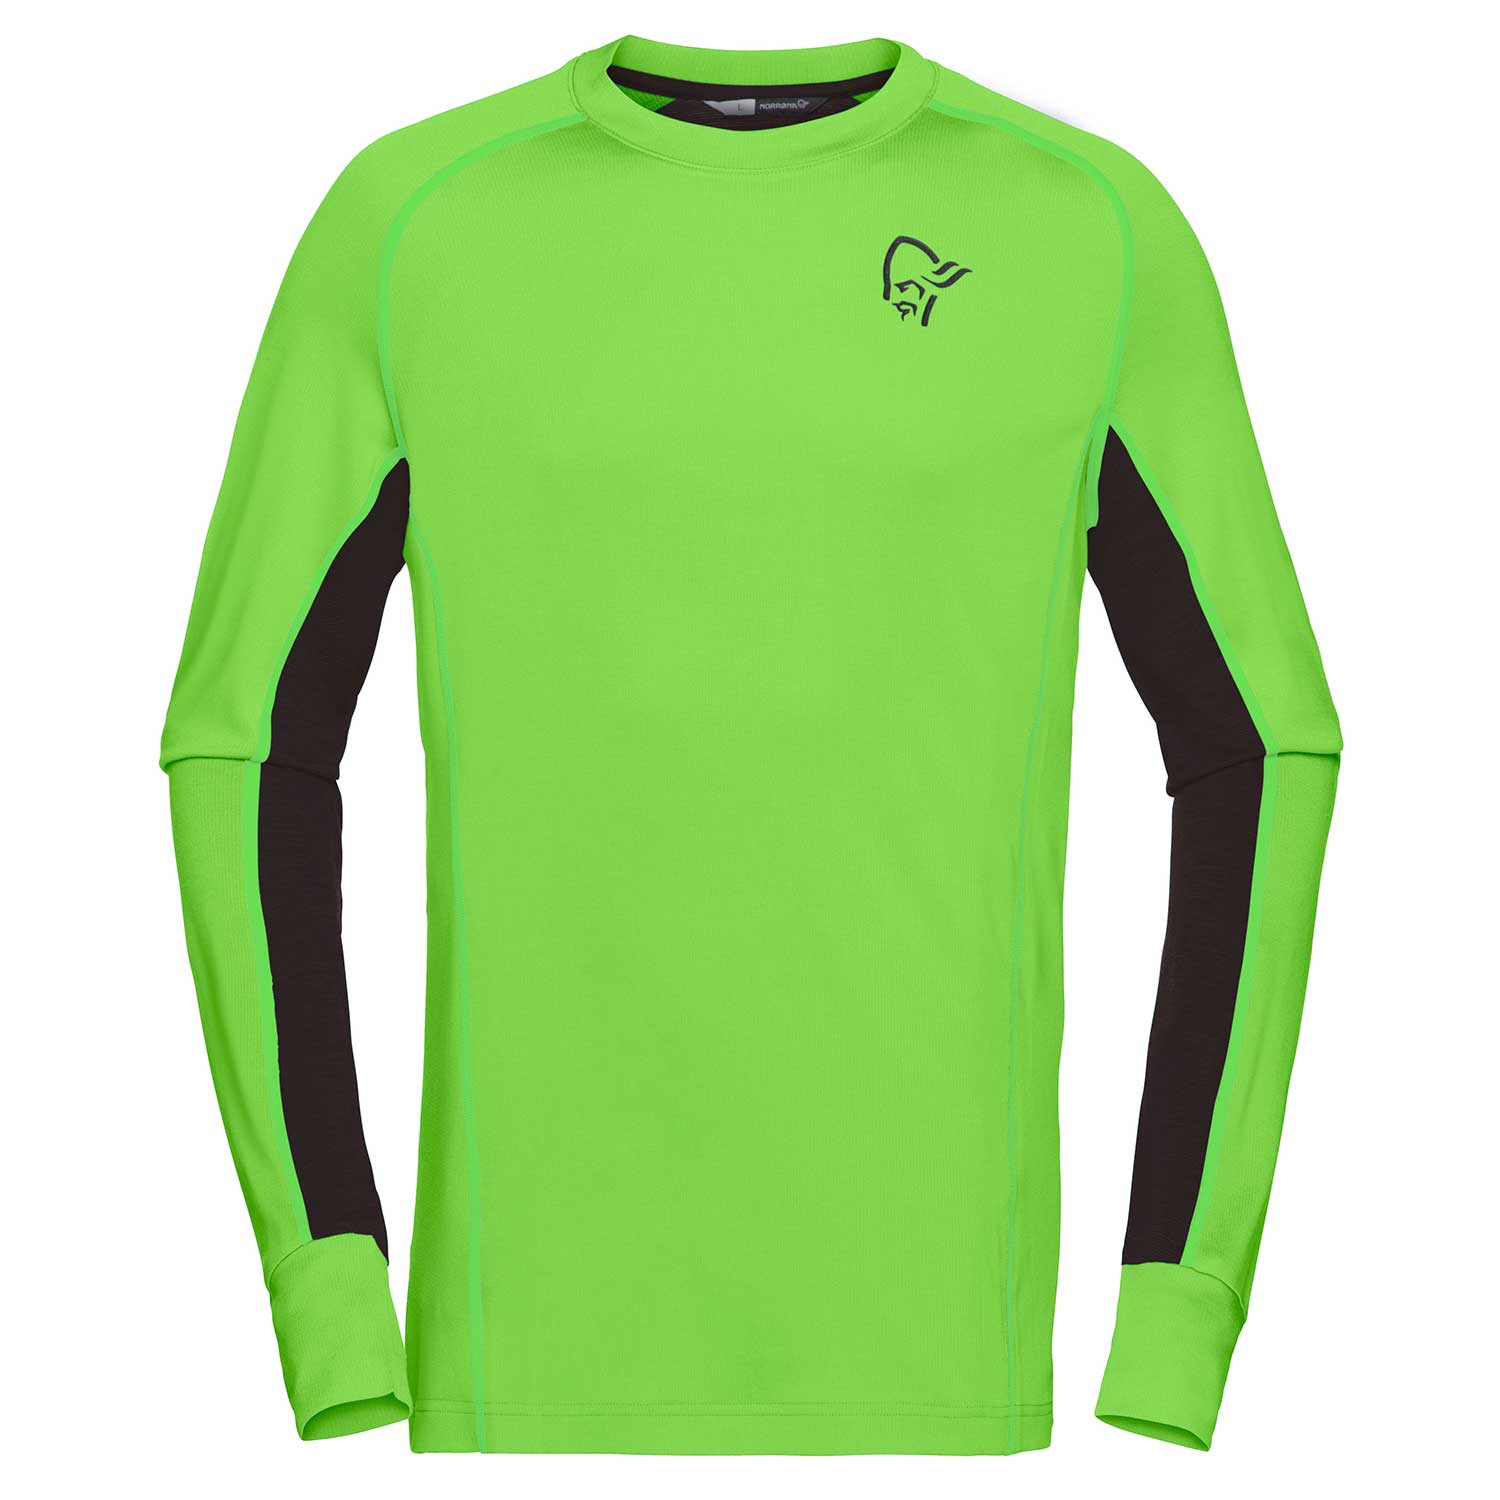 fjørå Powerwool Long sleeve (M)